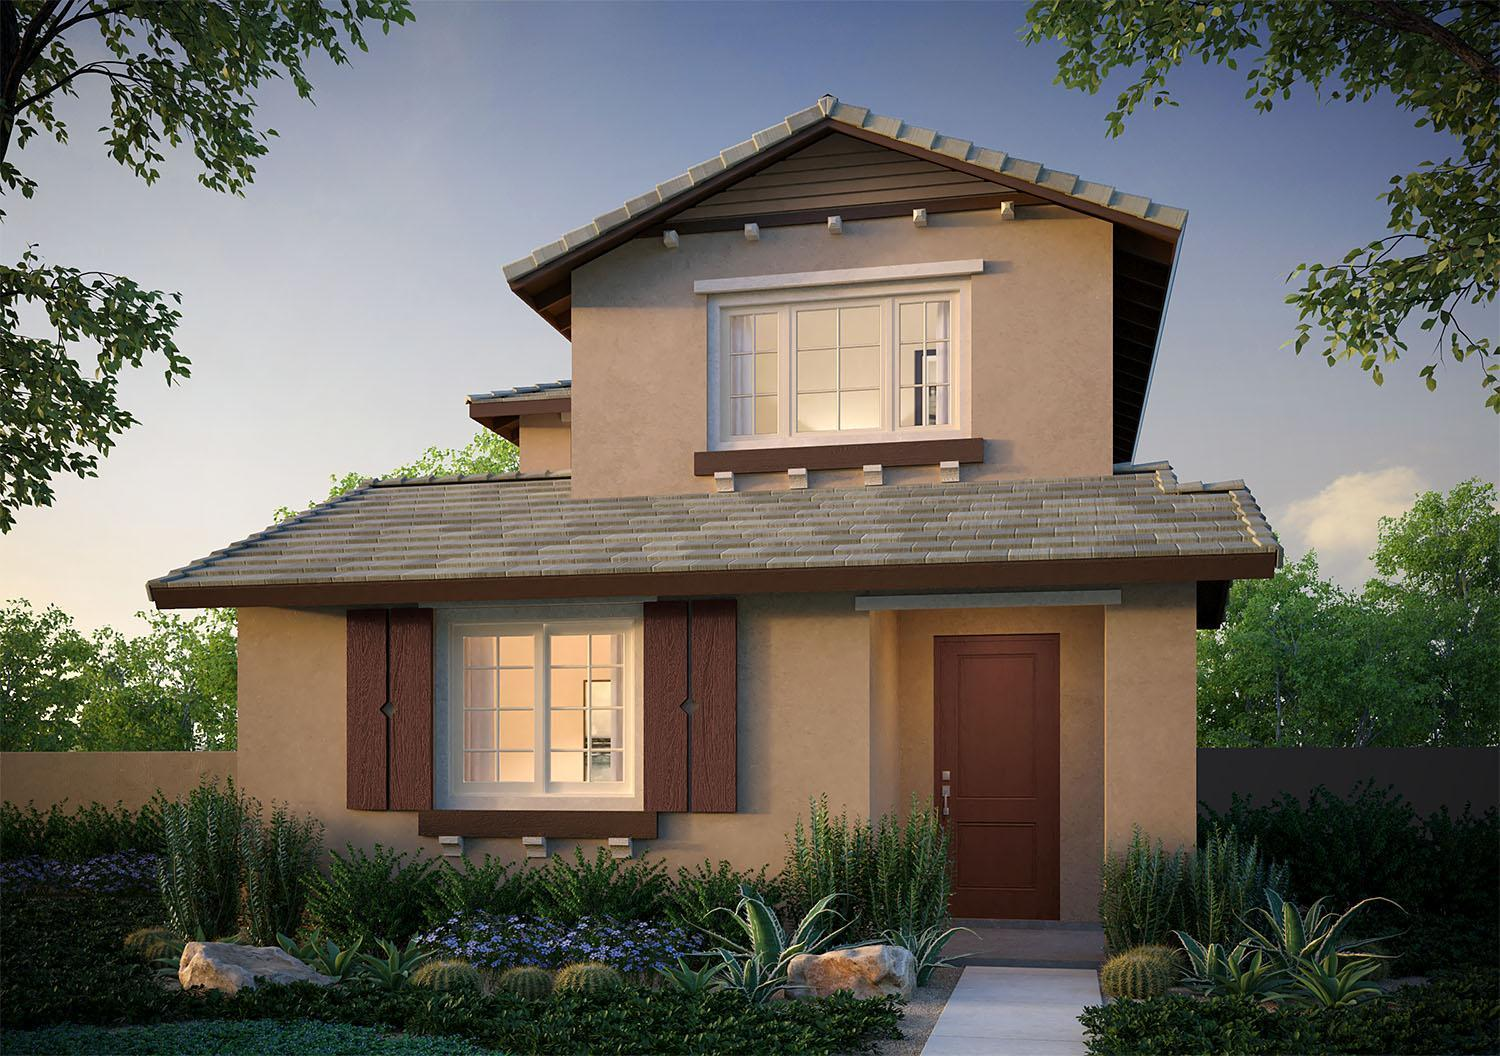 http://partners-dynamic.bdxcdn.com/Images/Homes/Lands59634/max1500_40413045-200109.jpg